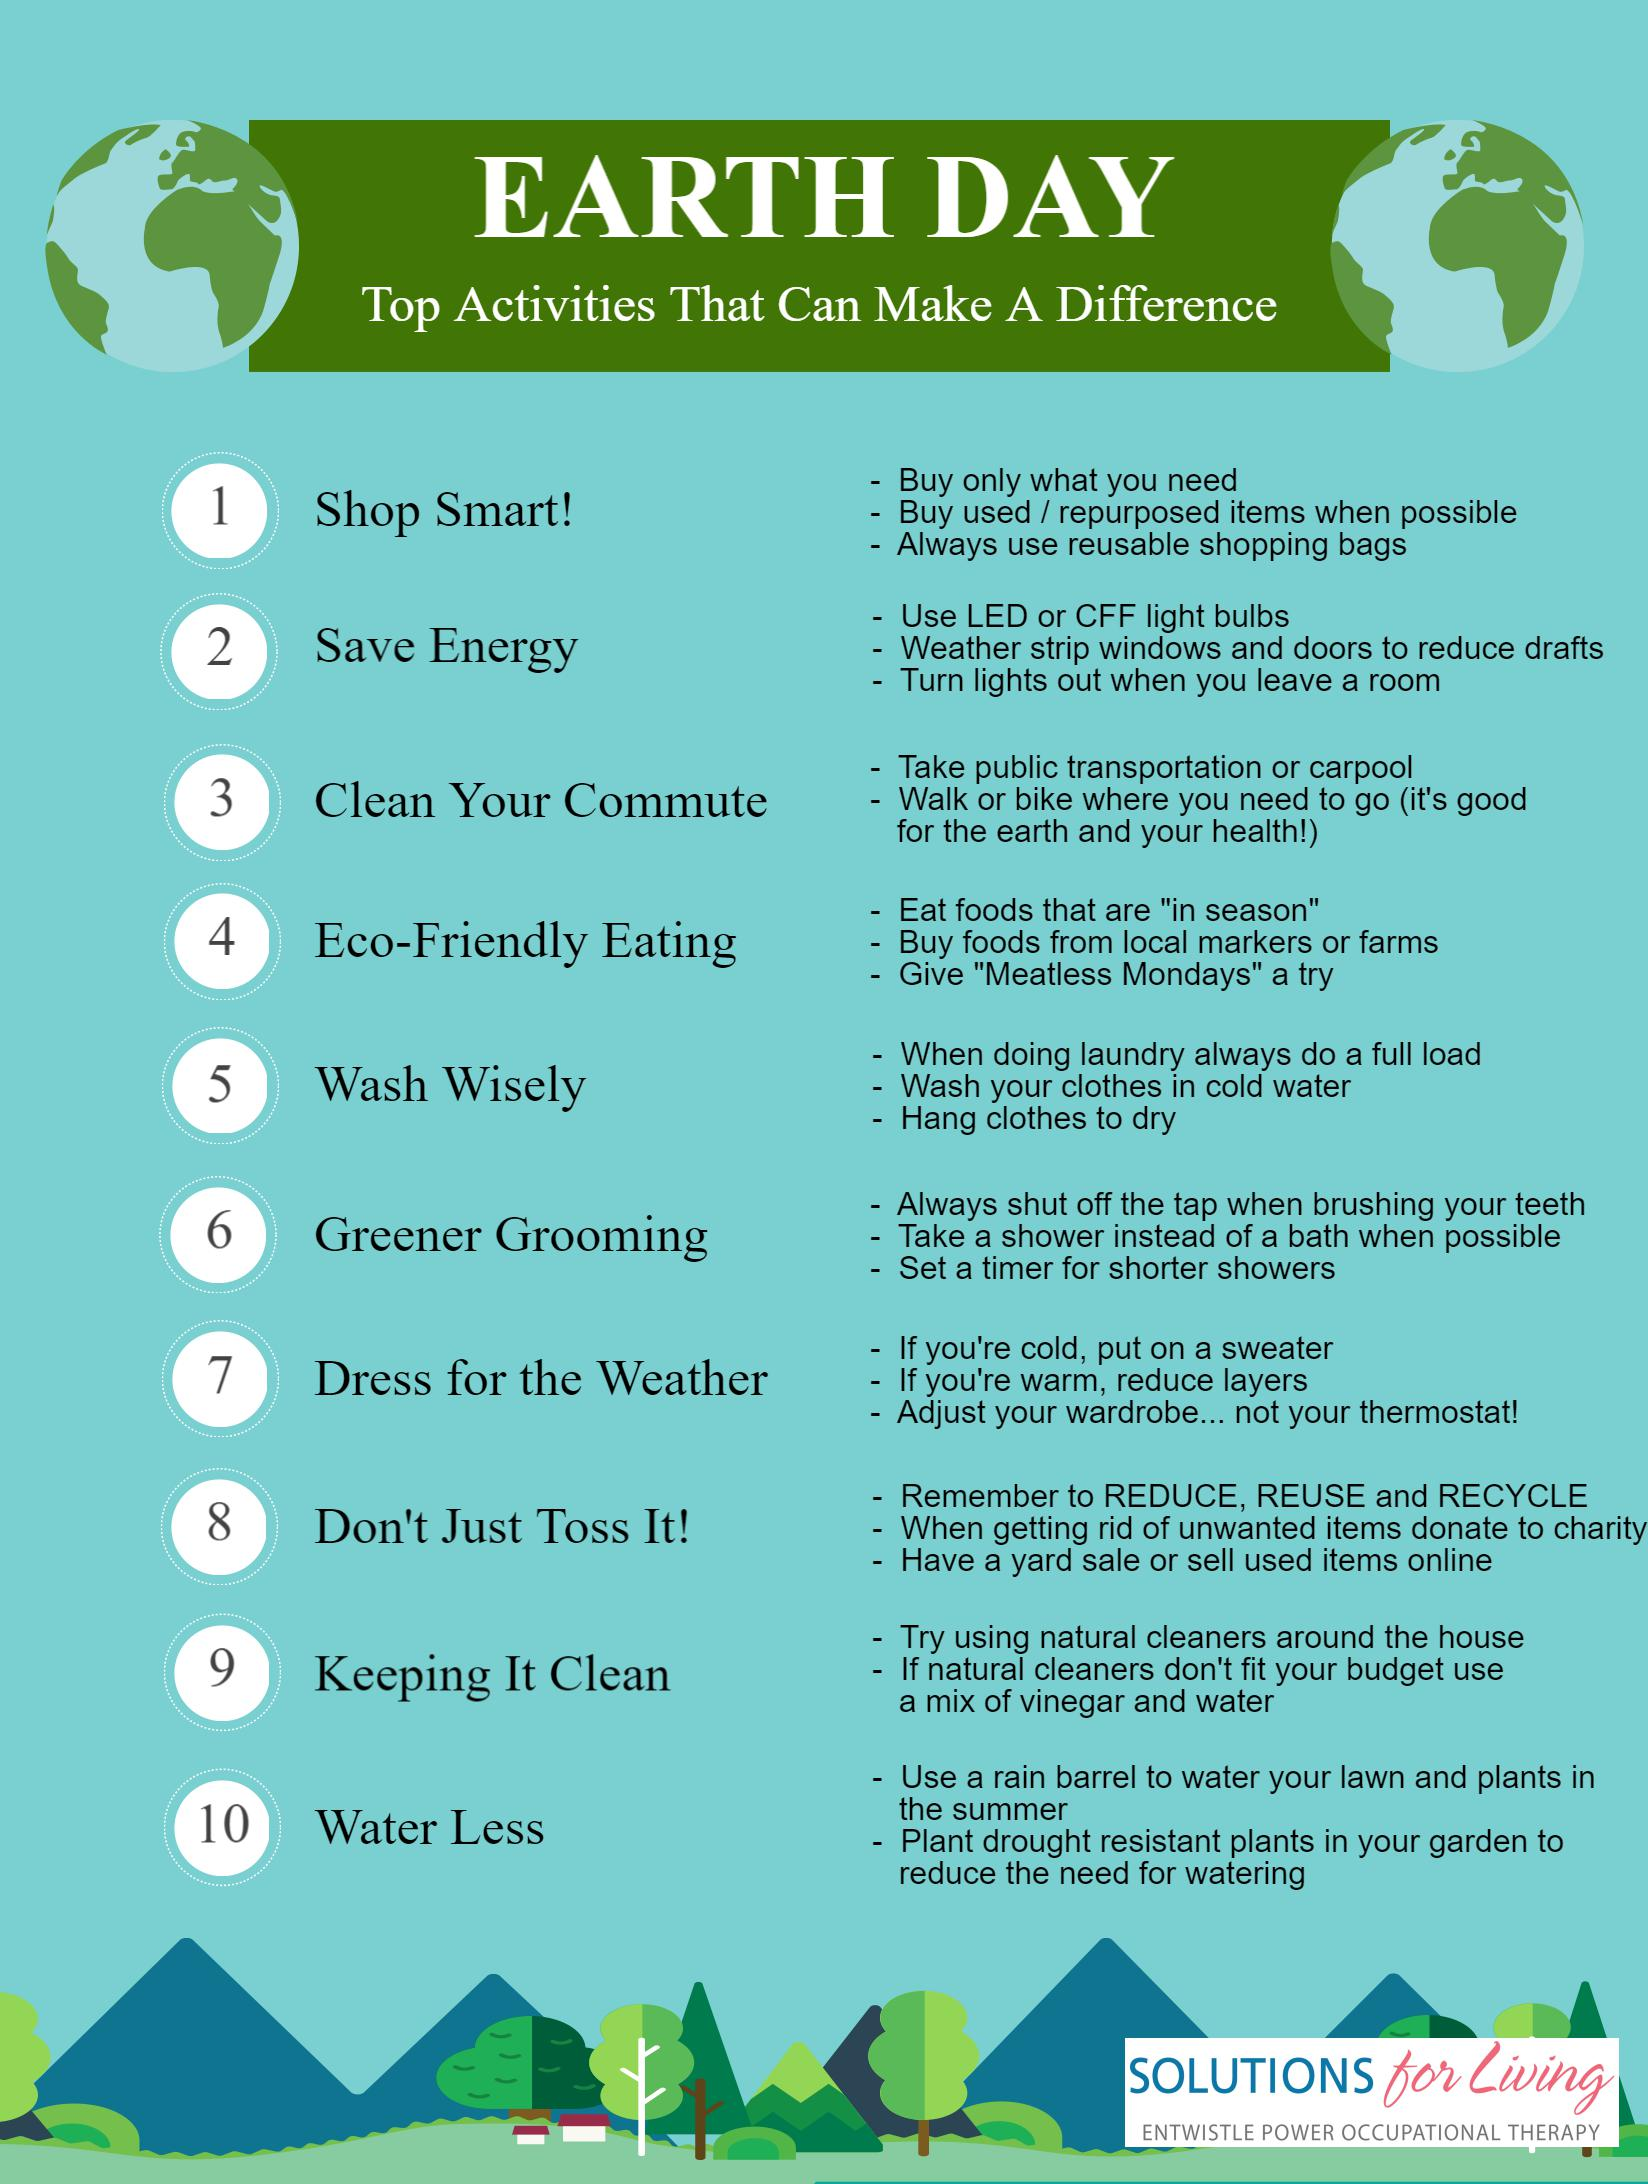 Earth Day Solutions For Living